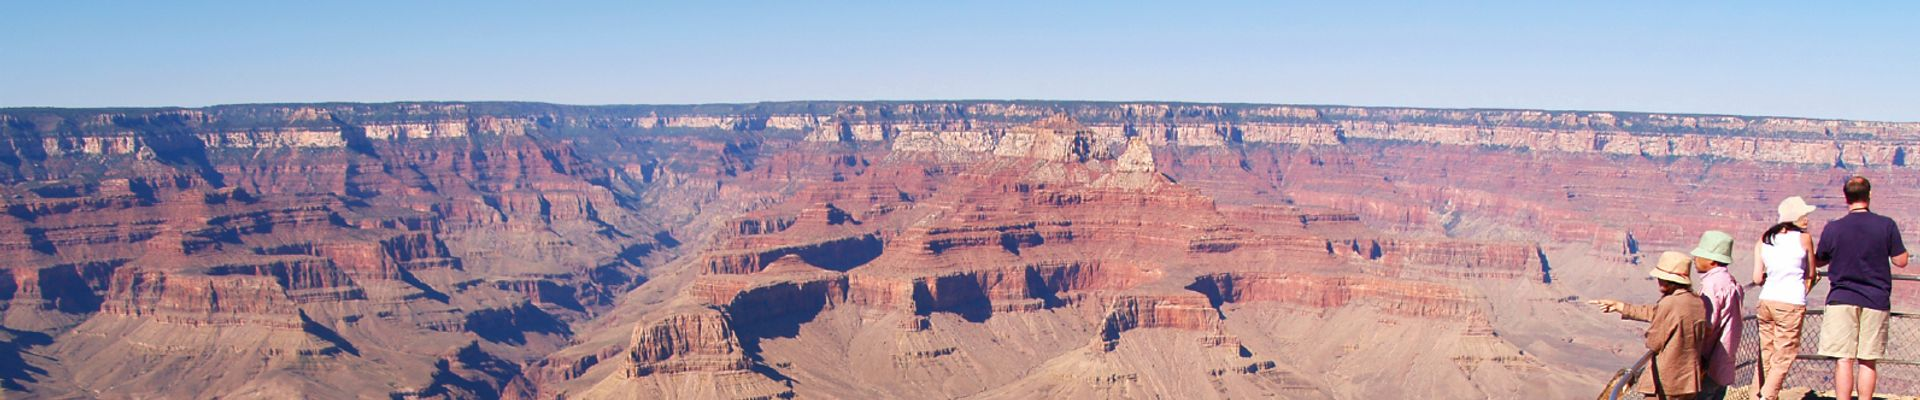 Visitors to the Grand Canyon National Park stand near the edge of a beautiful canyon lookout point.